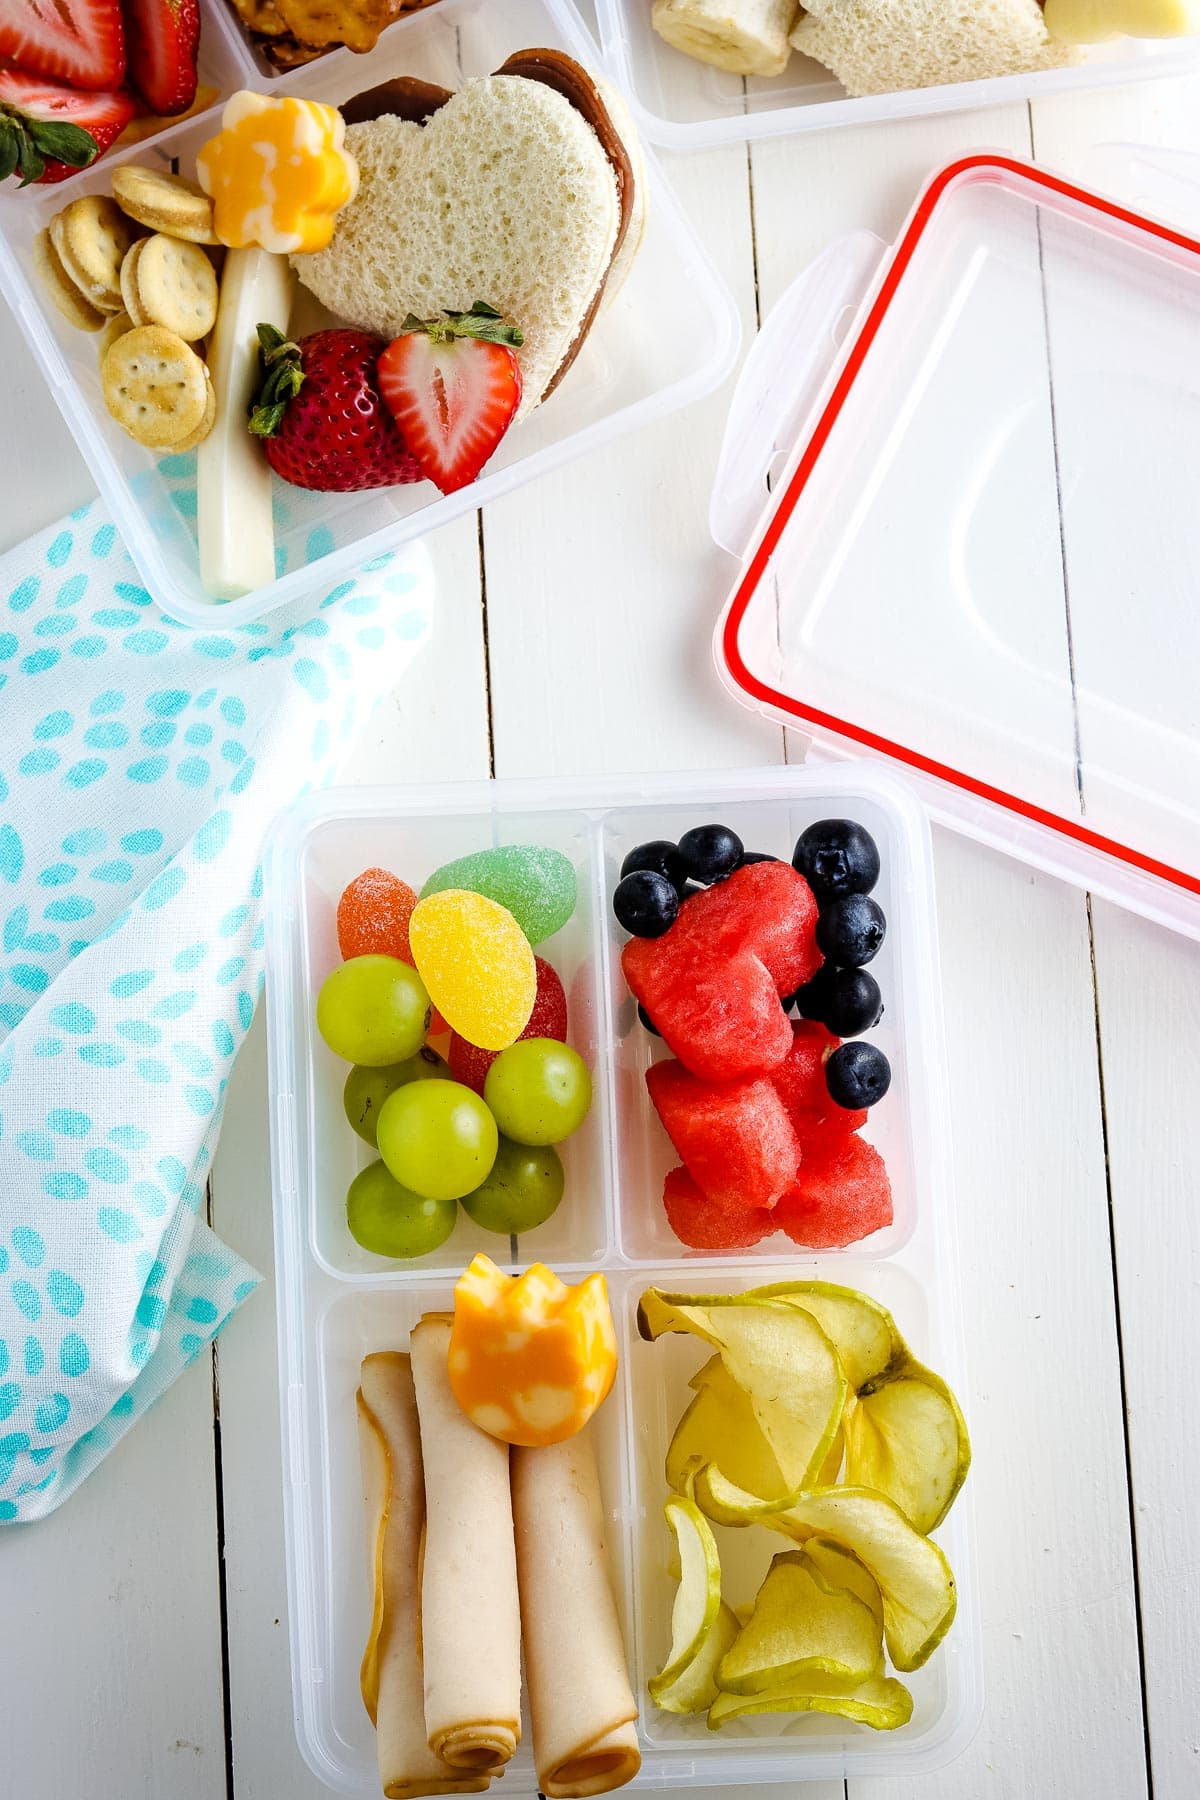 Lunch box with turkey, fruit, apple chips, cheese and more